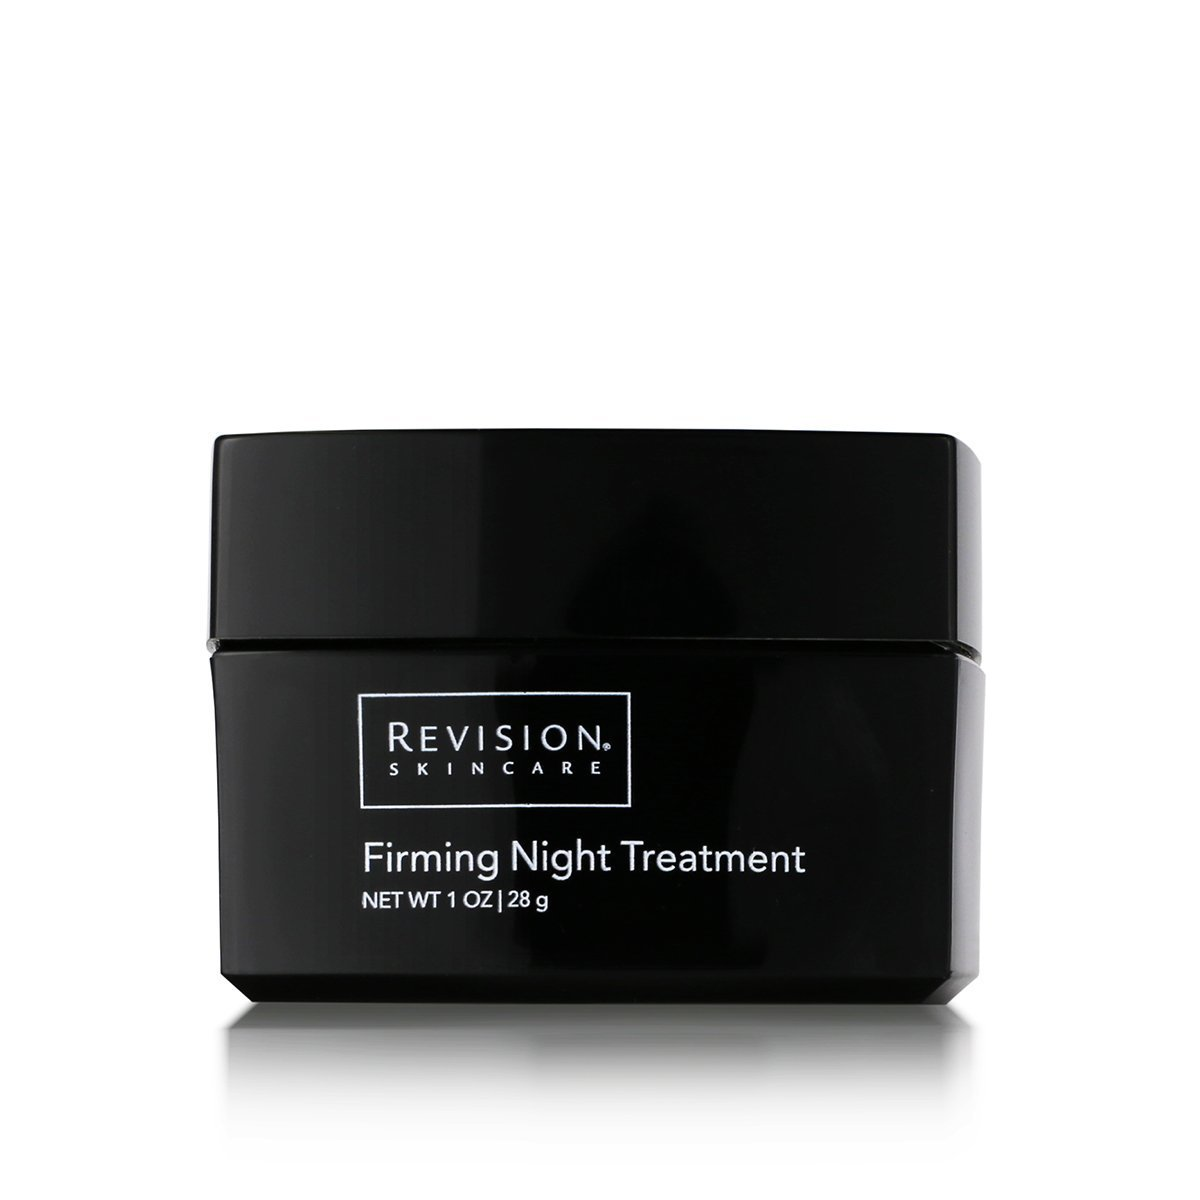 Revision Skincare - FIRMING NIGHT TREATMENT.jpeg